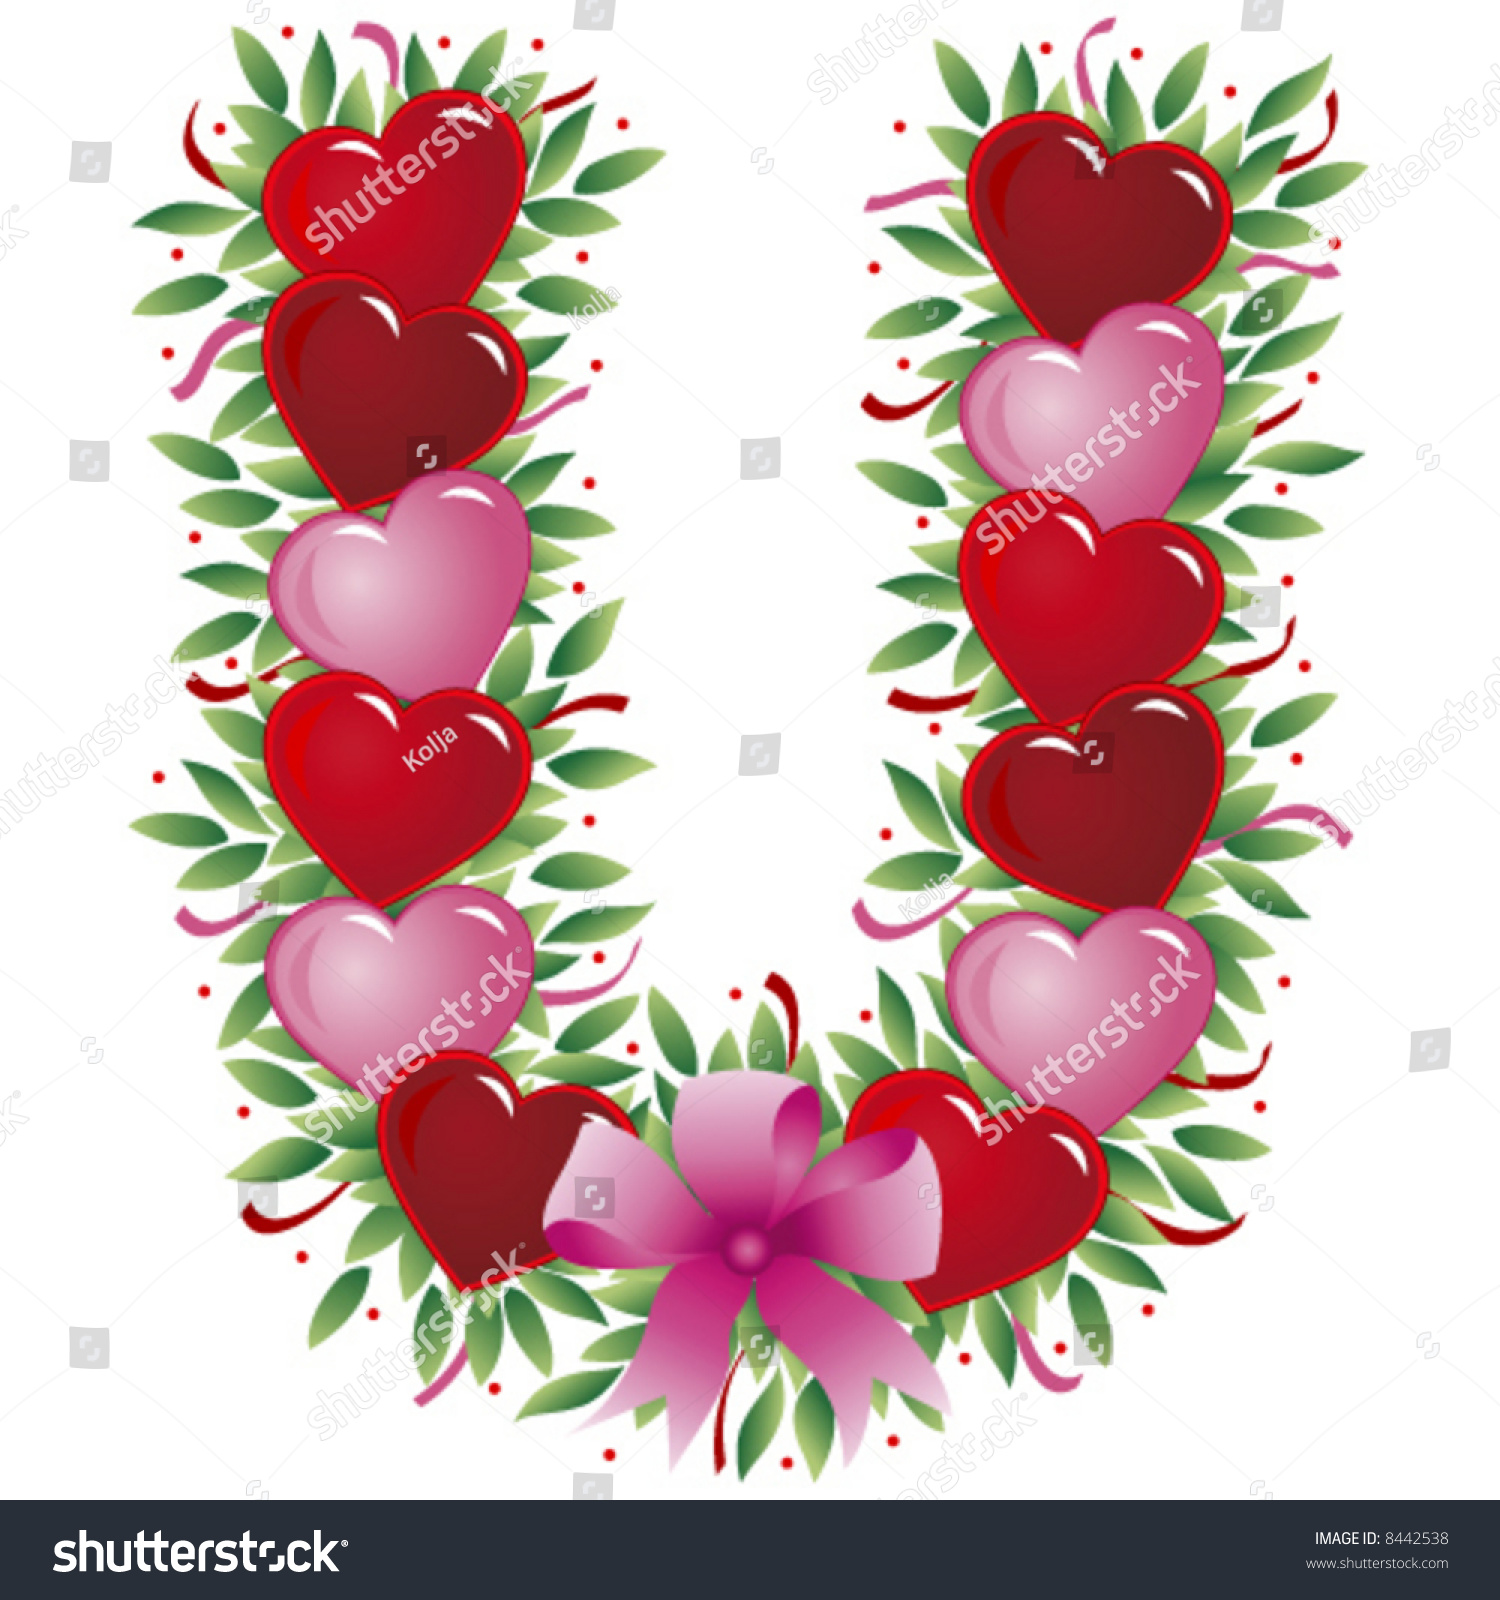 Letter u valentine heart letter stock vector royalty free 8442538 letter u valentine heart letter stopboris Image collections